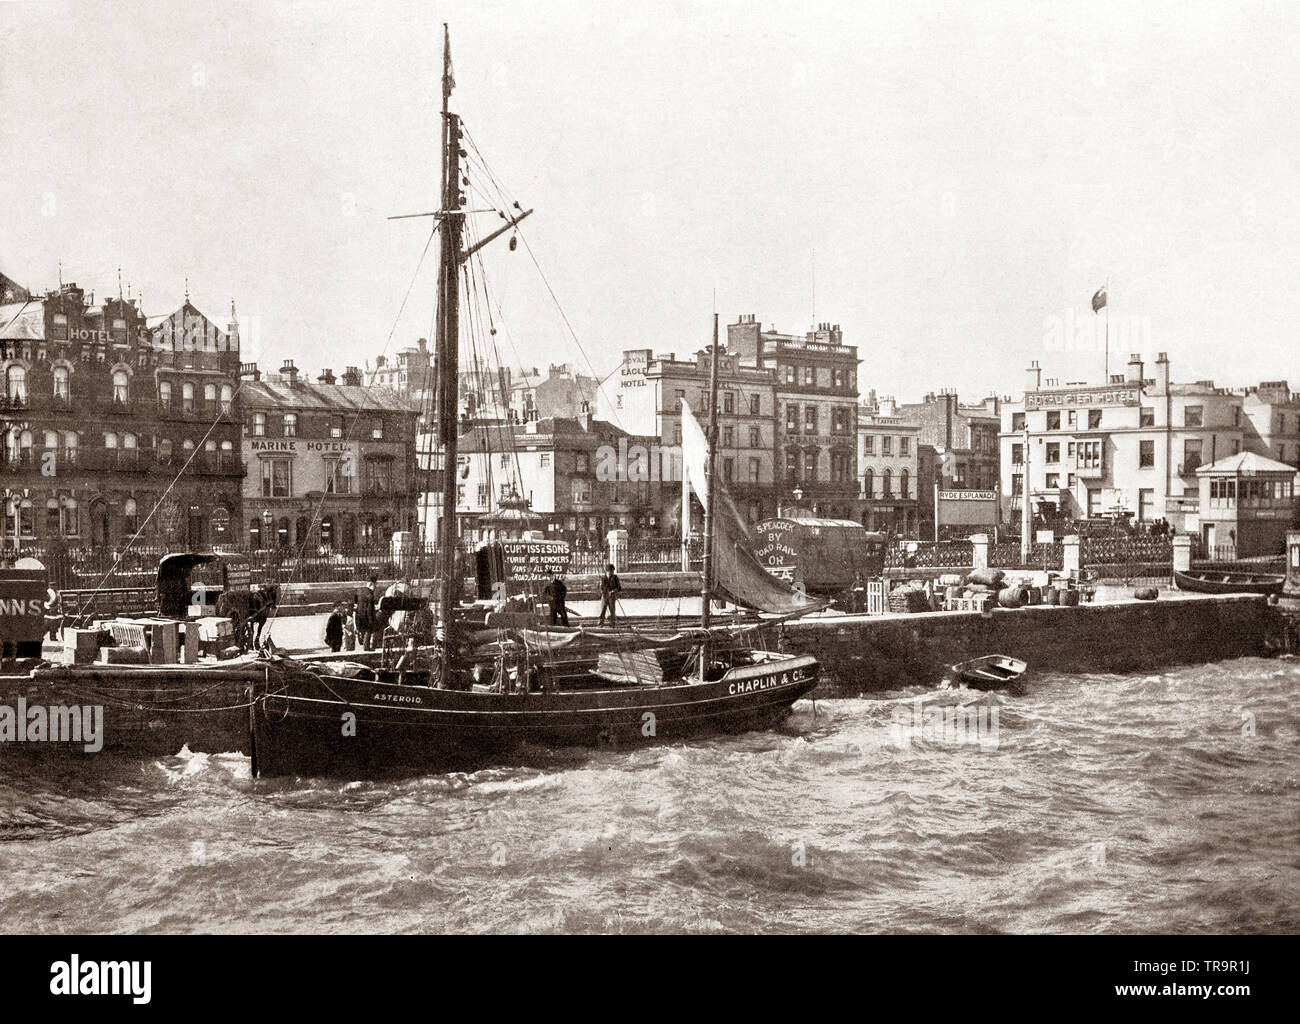 A 19th Century view of a sailing ship moored against the Esplanade in Ryde, an English seaside town on the north-east coast of the Isle of Wight. It grew in size as a seaside resort after the villages of Upper Ryde and Lower Ryde were merged in the 19th Century. - Stock Image